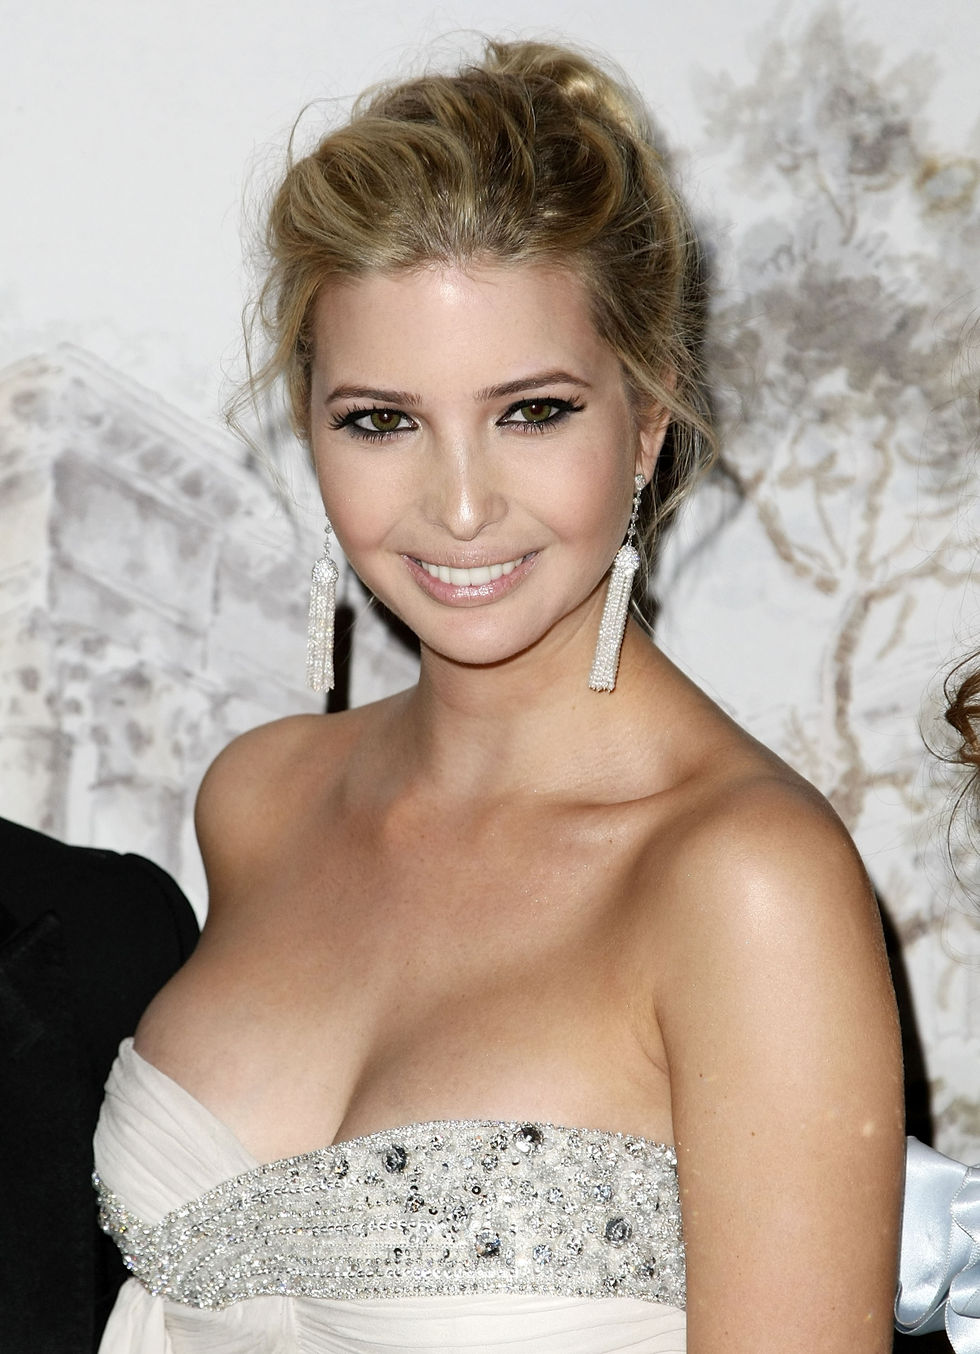 ivanka trump height weight hot picture